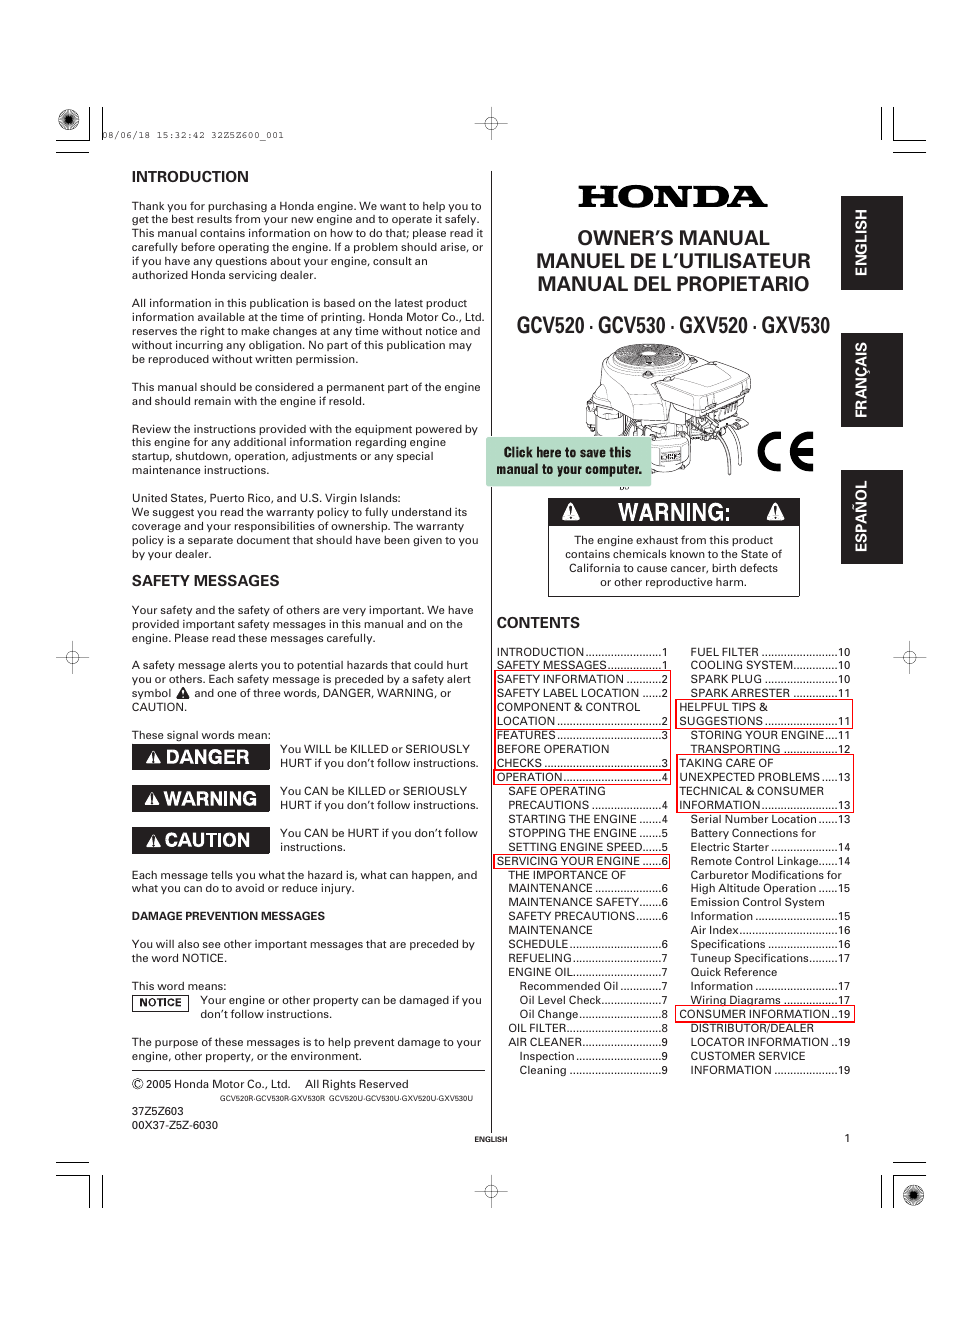 HONDA GXV520 User Manual | 58 pages | Also for: GXV530 ... on